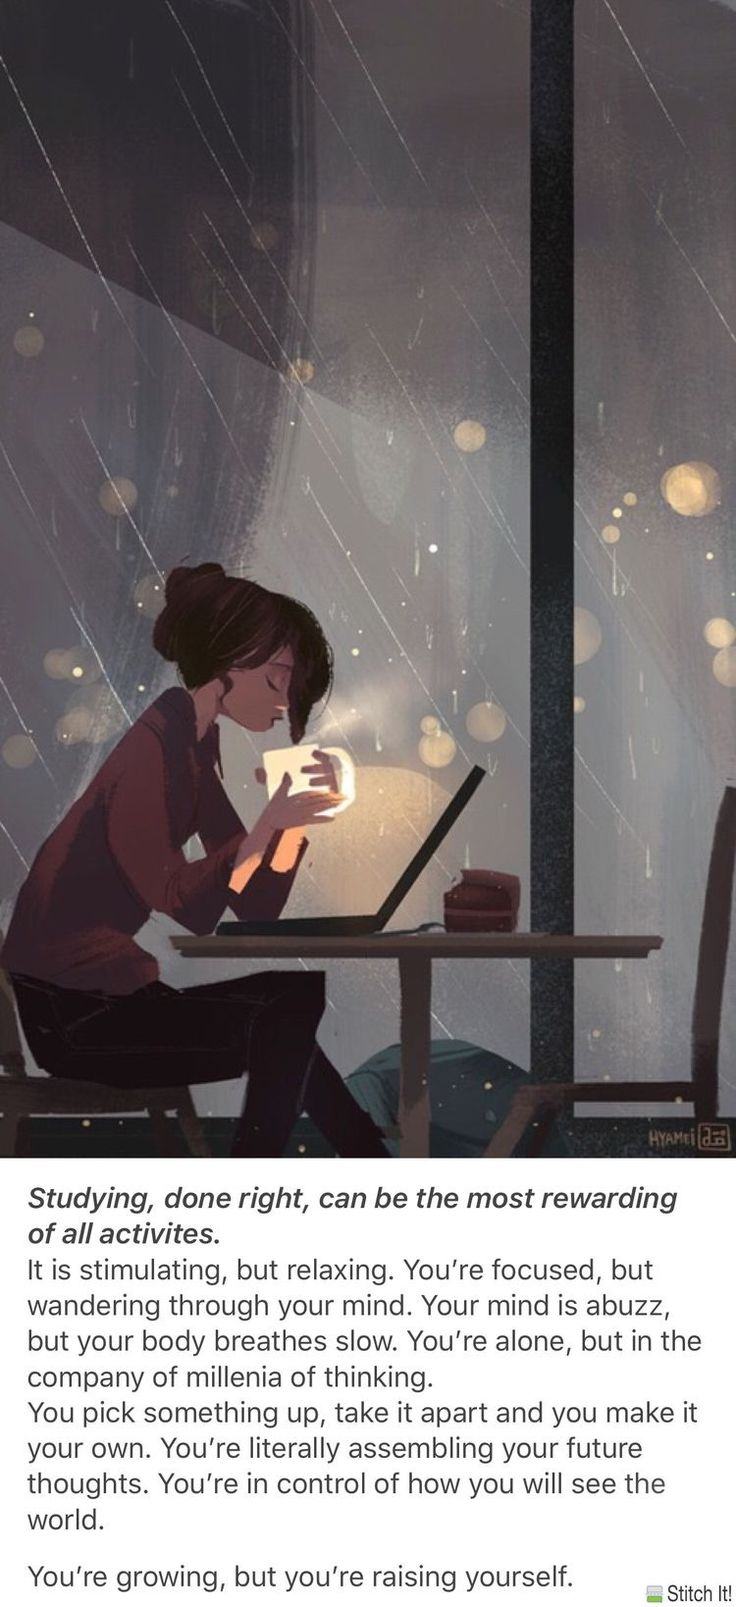 My favorite way to study, …at peace, with coffee, cozy inside with rain out a huge window.